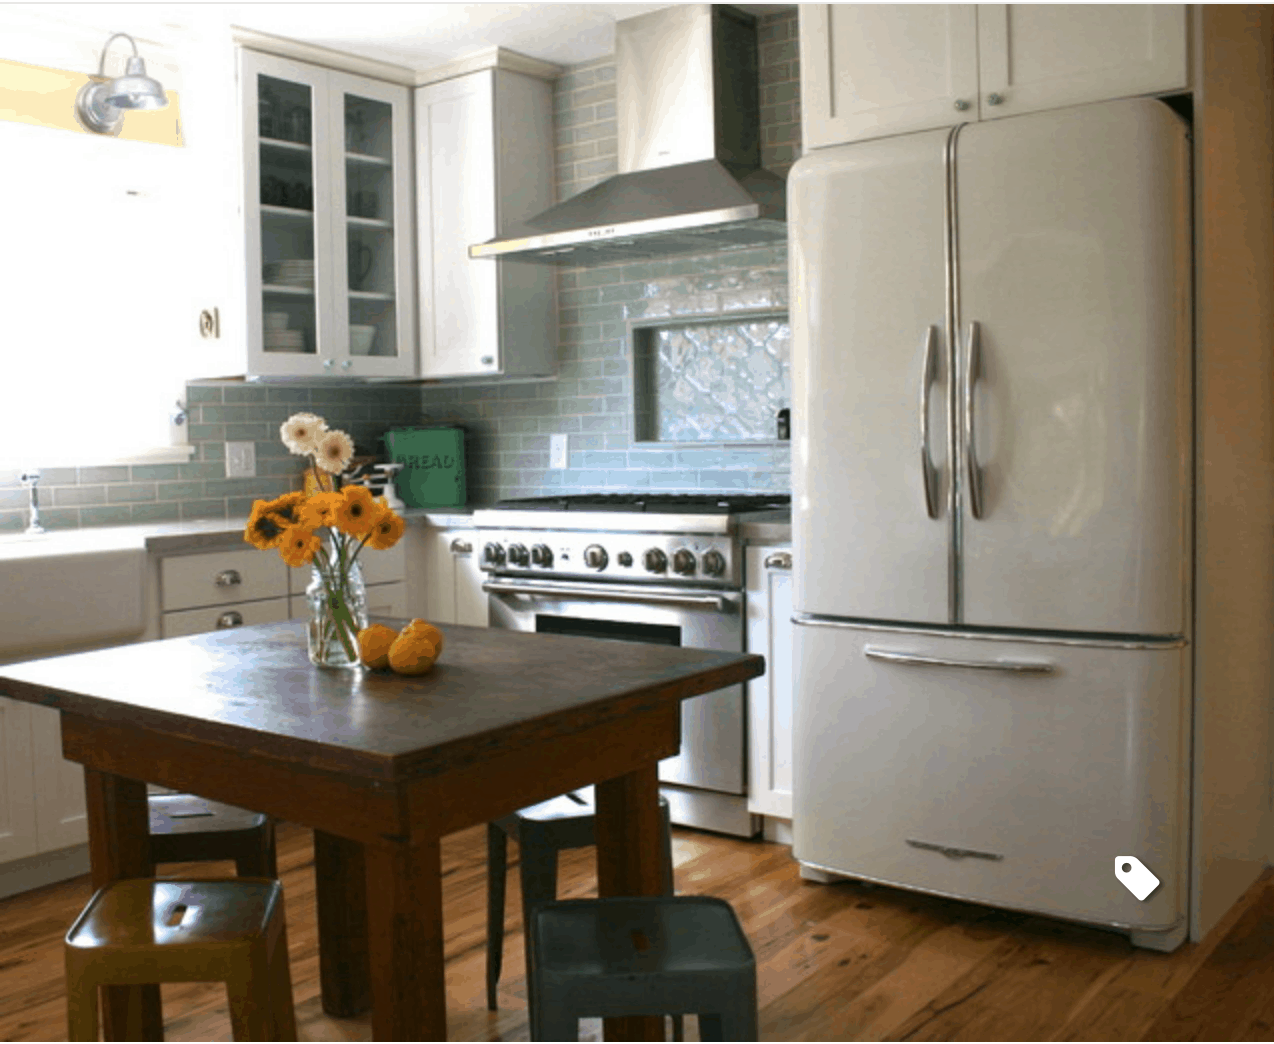 Farmhouse kitchen with white fridge and stainless steel appliances